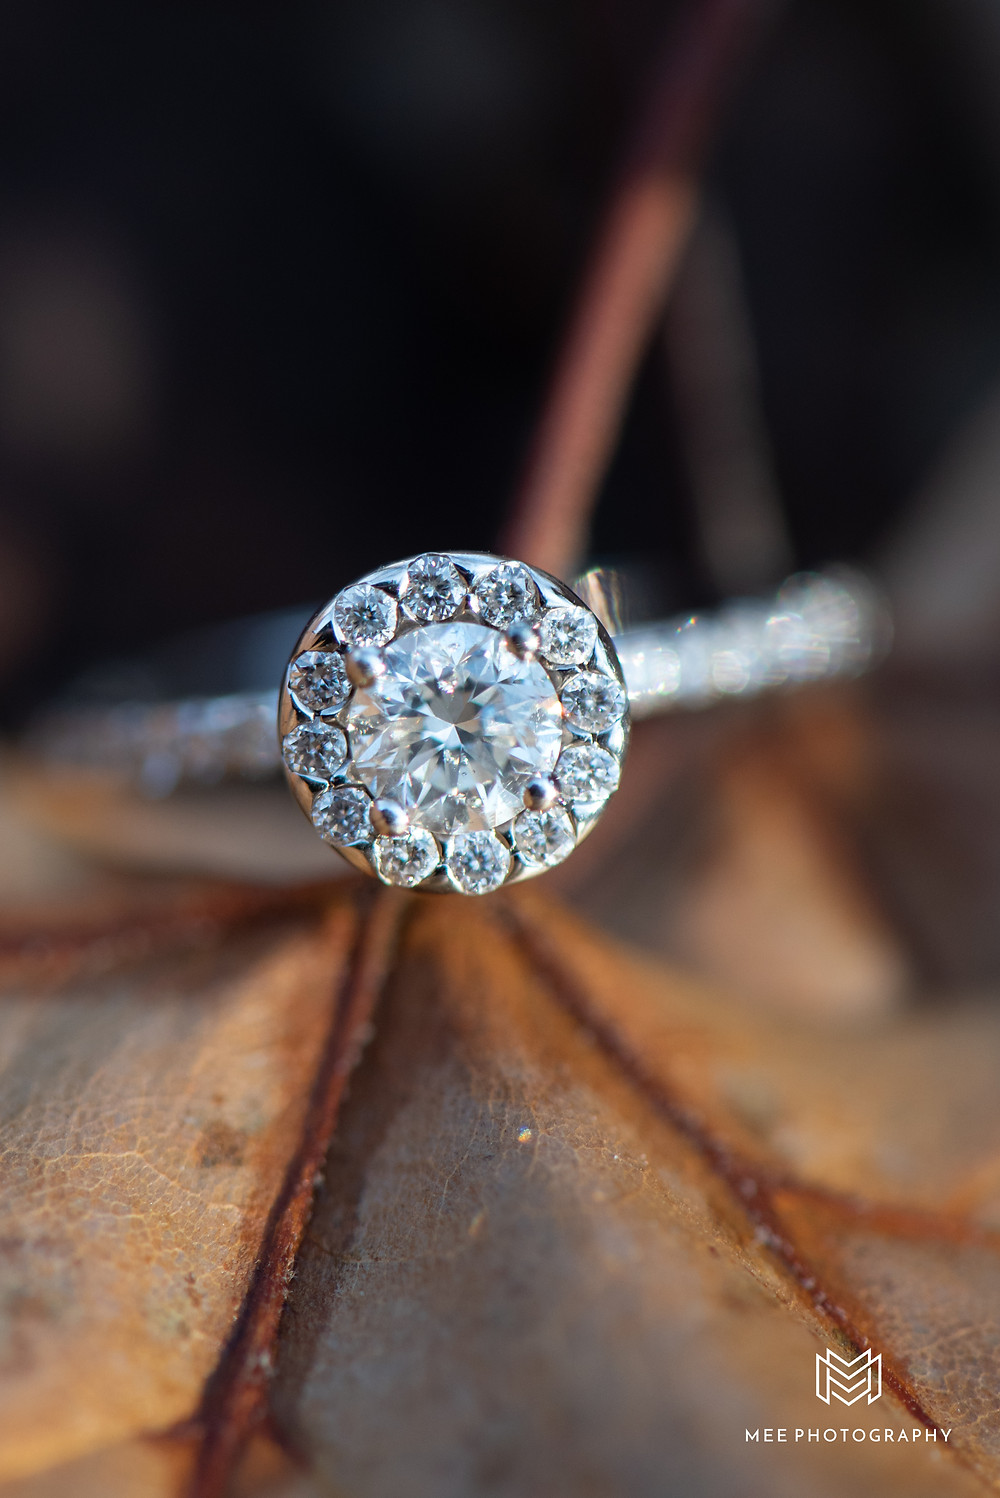 Macro shot of a round halo diamond engagement ring on a fall leaf